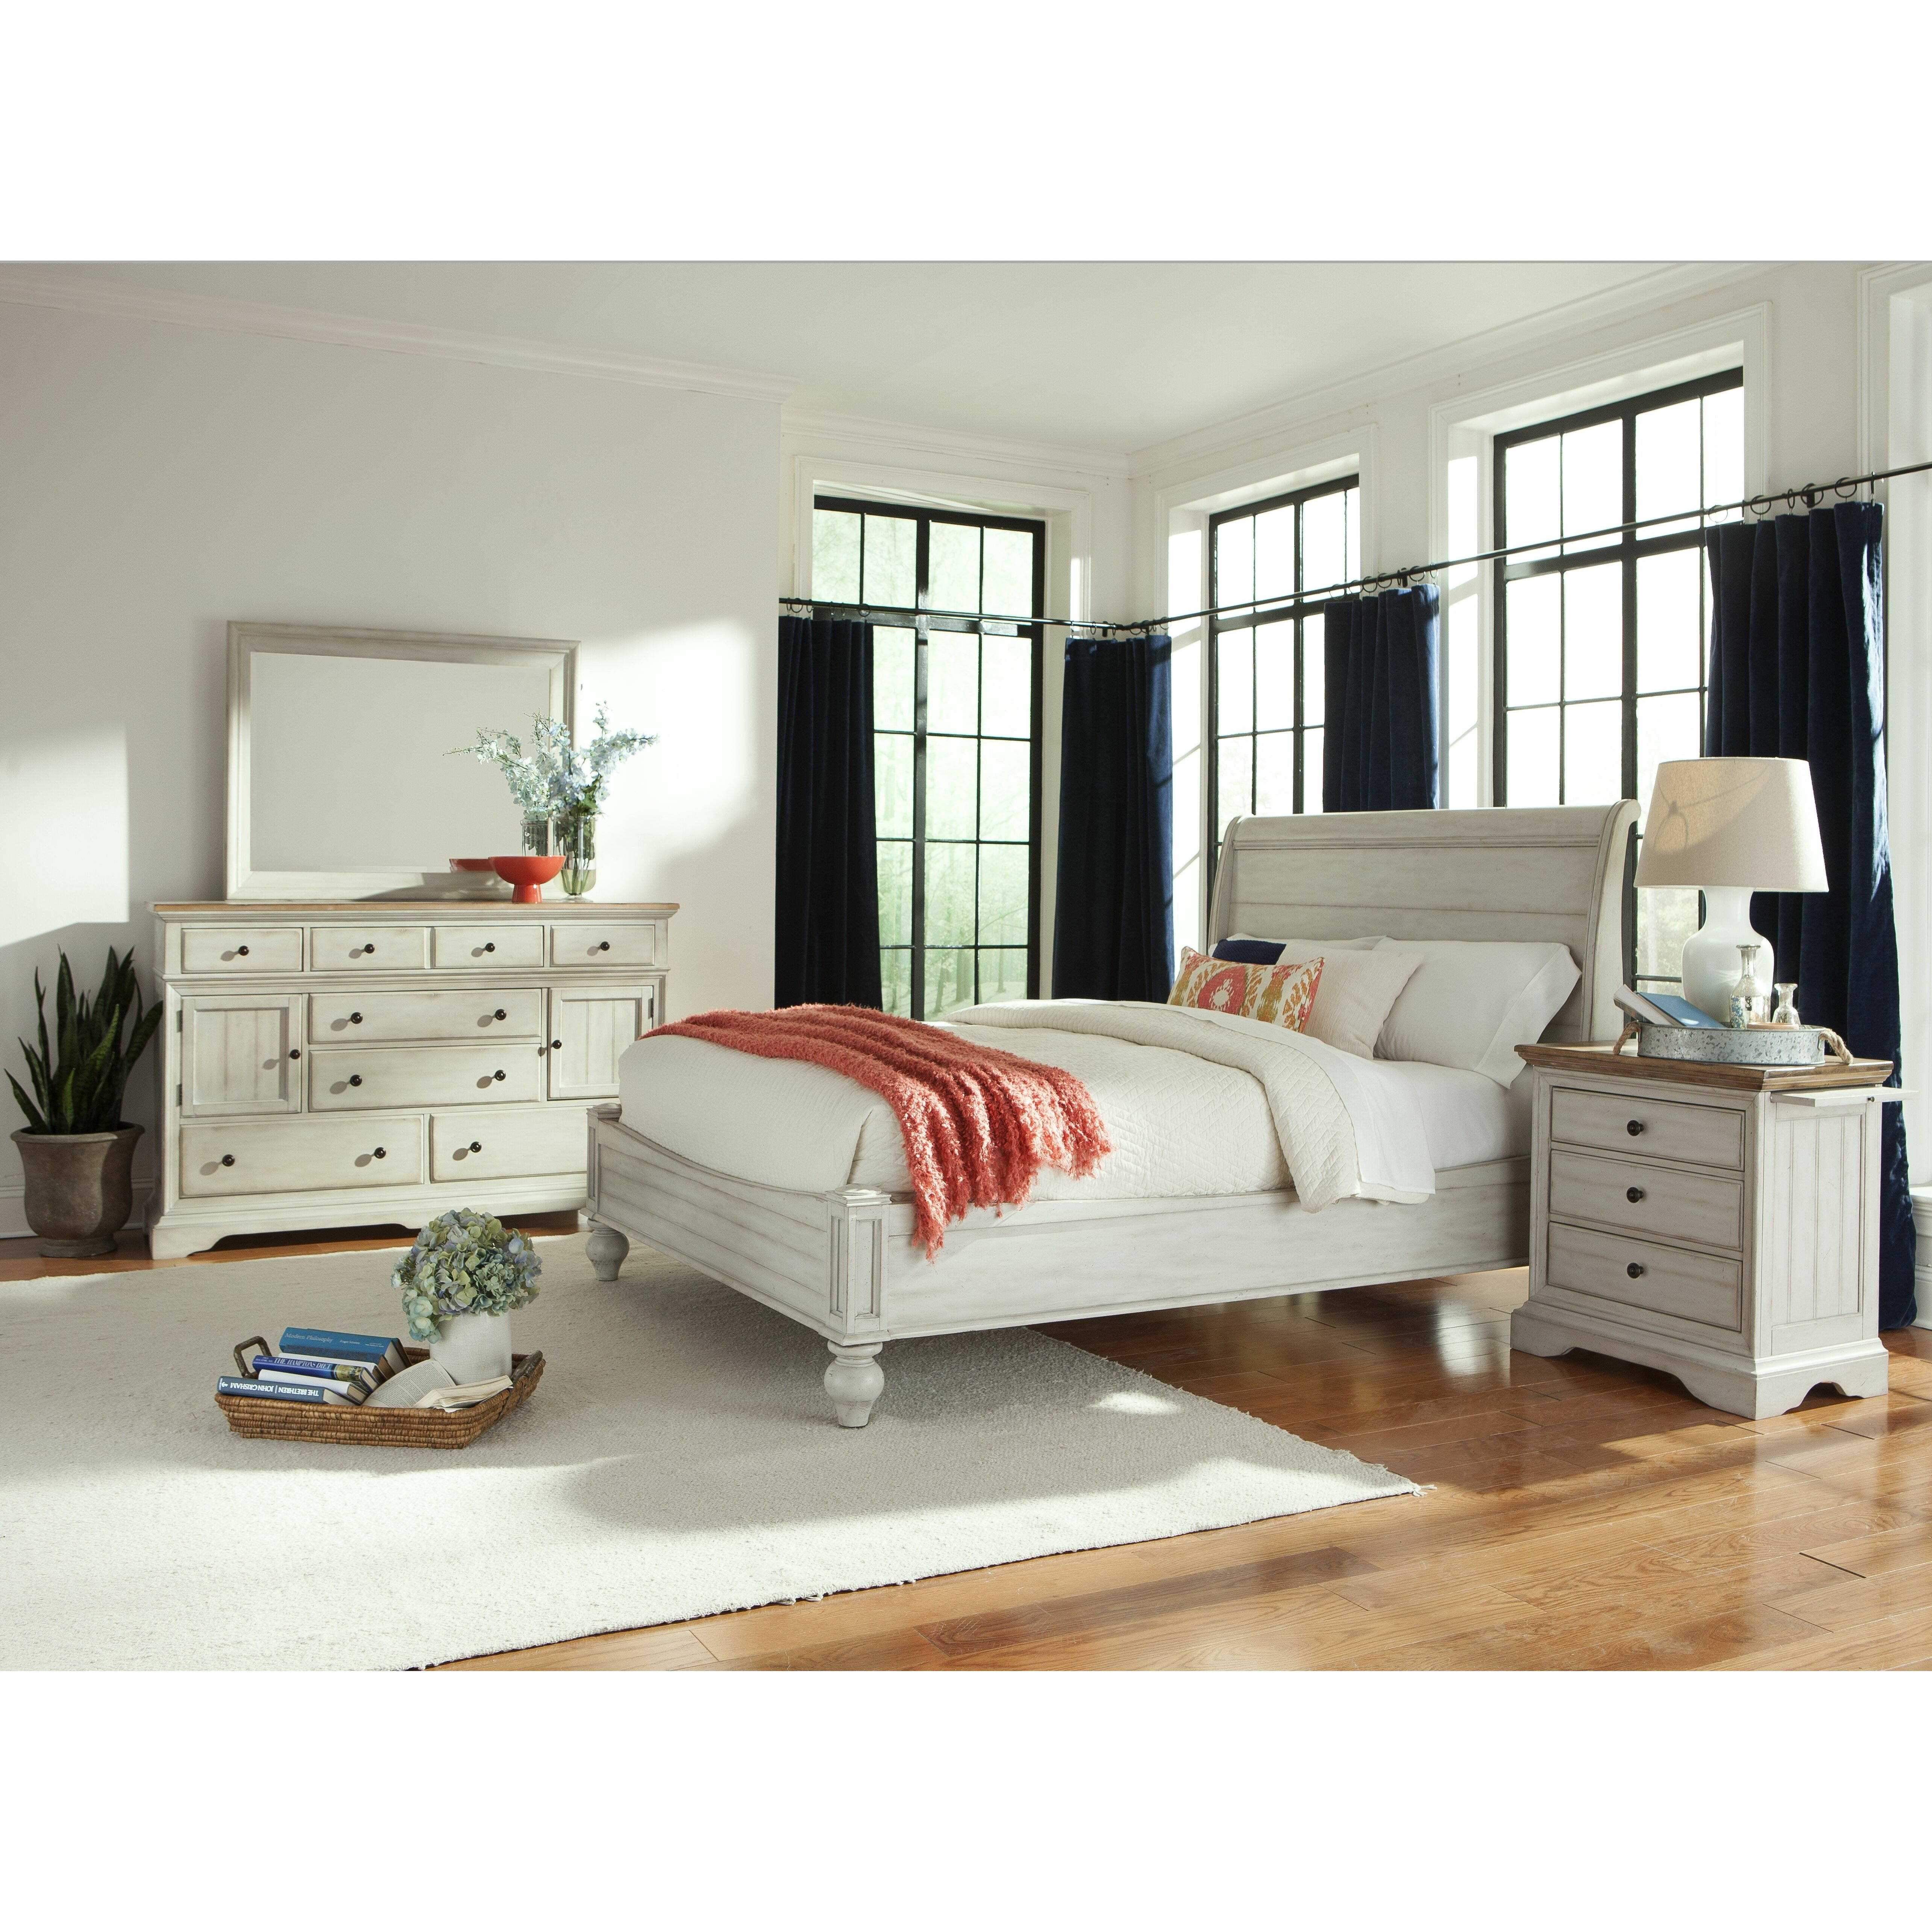 Cresent Furniture Cottage Panel Customizable Bedroom Set Reviews Wayfair